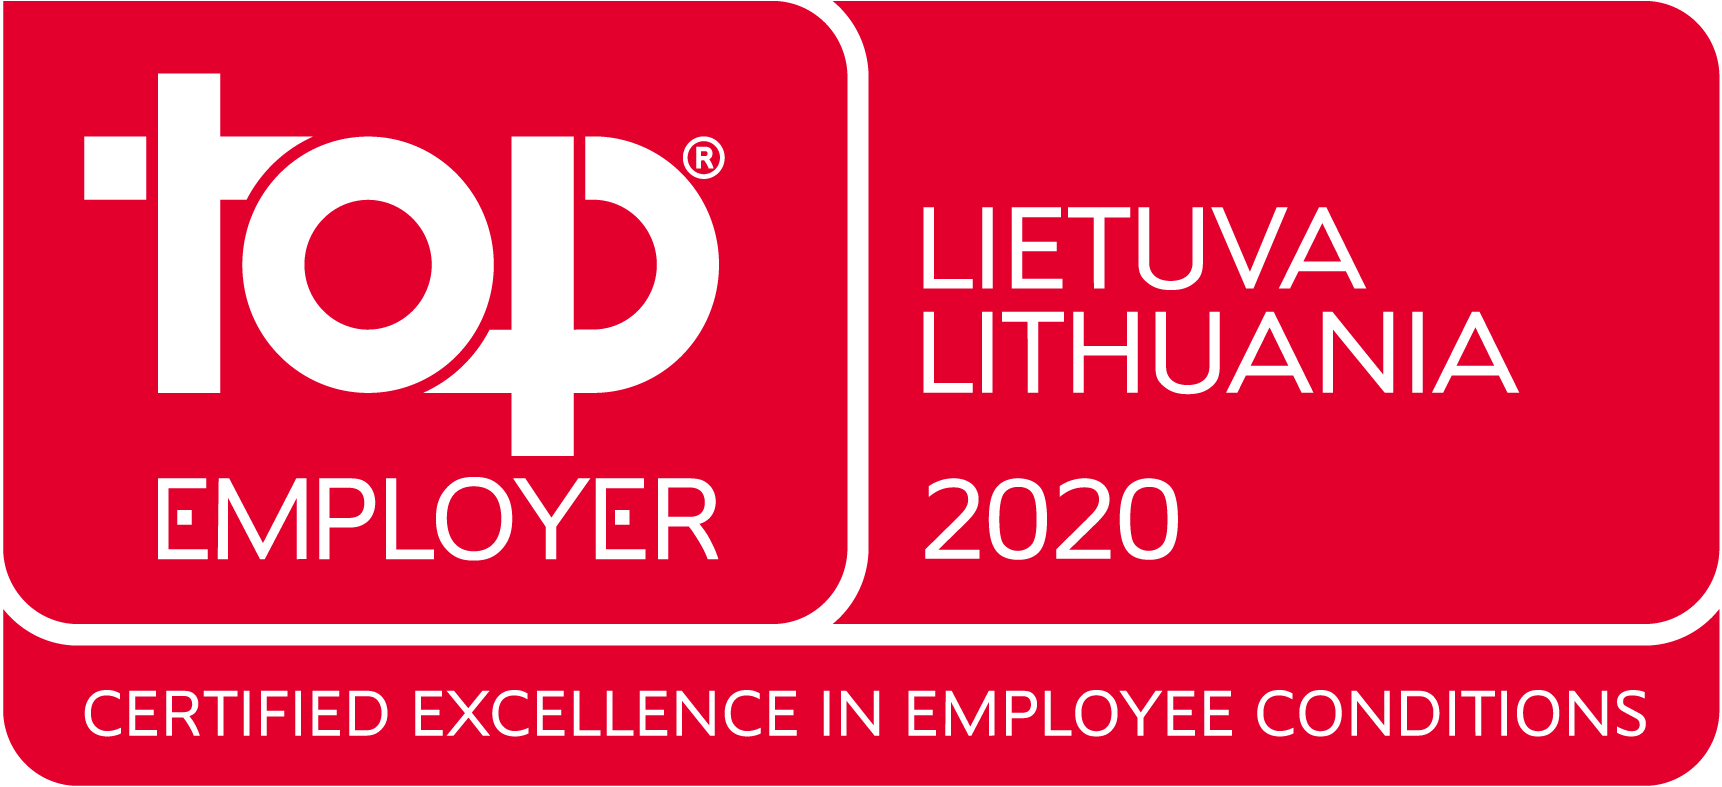 Top Employer Lithuania 2020